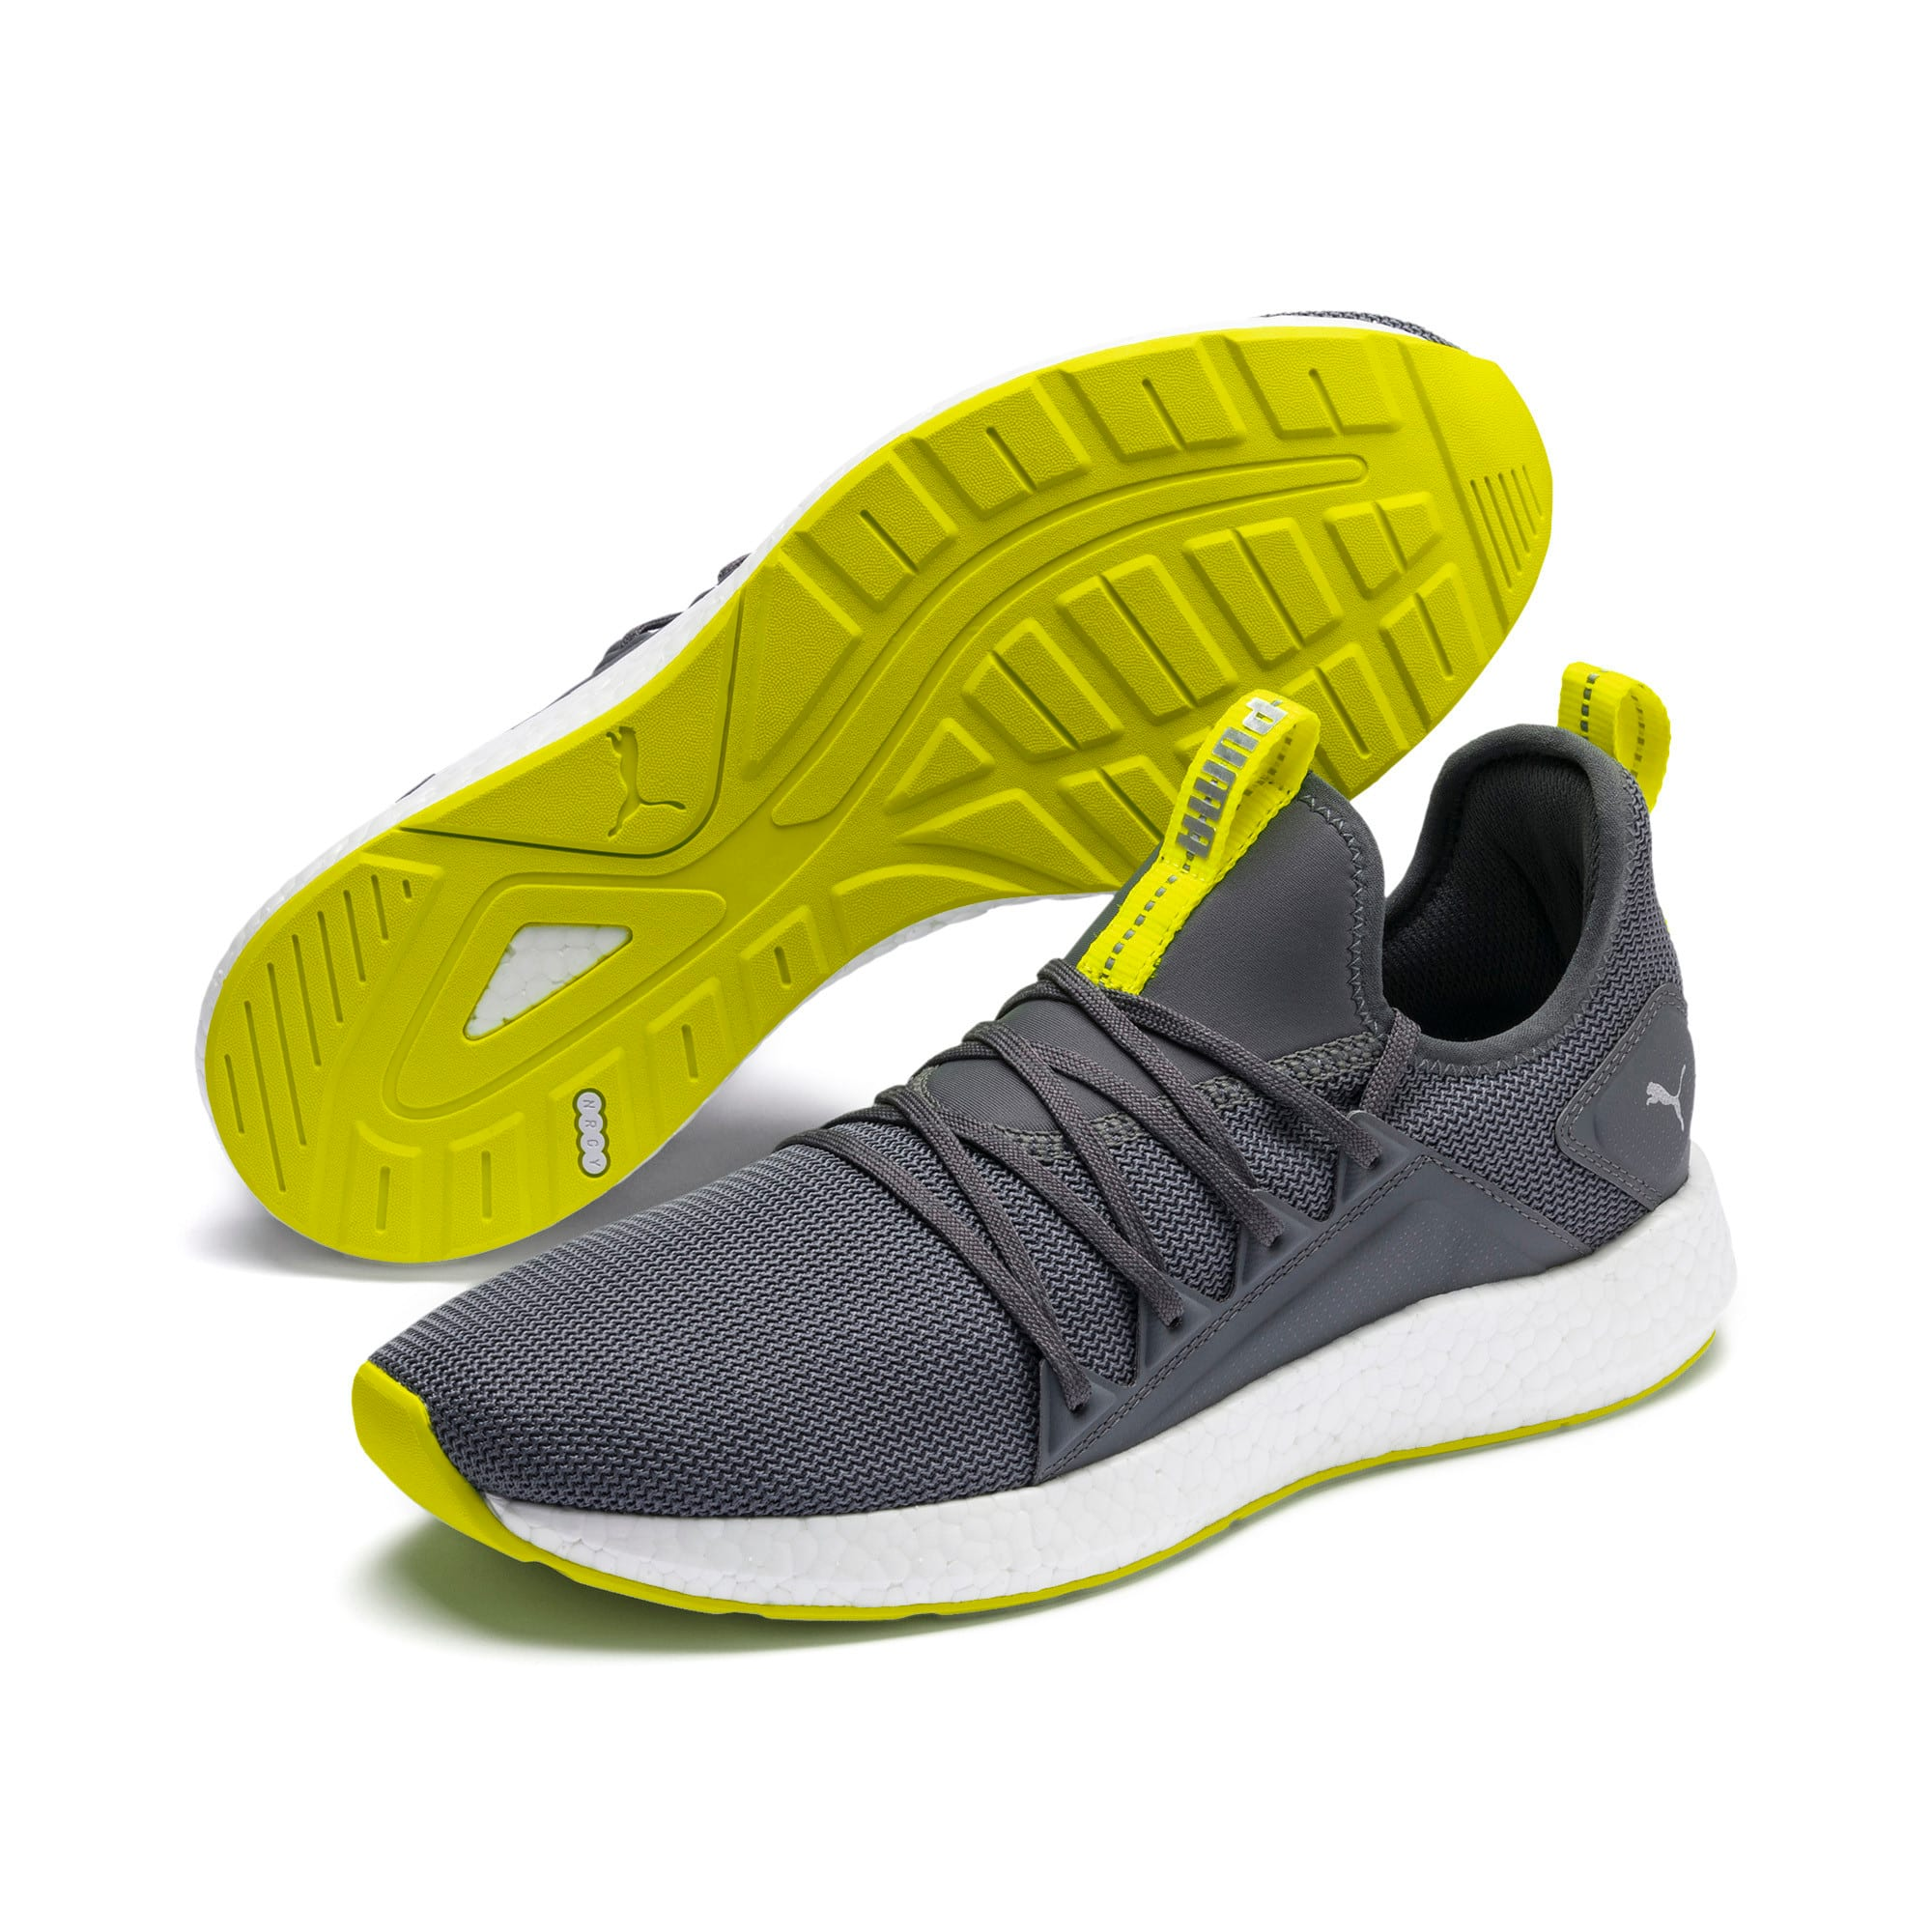 Thumbnail 3 of NRGY Neko Lights hardloopschoenen voor heren, CASTLEROCK-Yellow Alert, medium